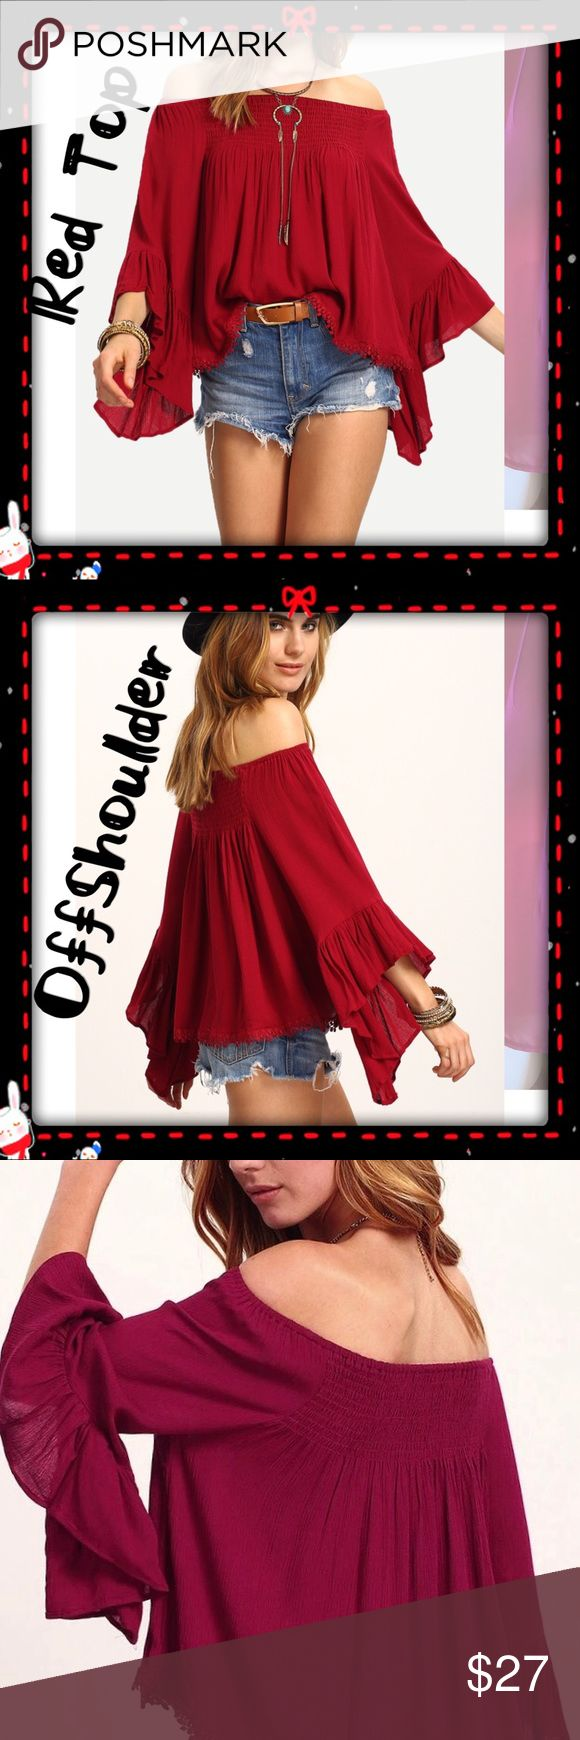 Beautiful Off Shoulder Red Top Beautiful Off Shoulder Red Tops. Tops Blouses